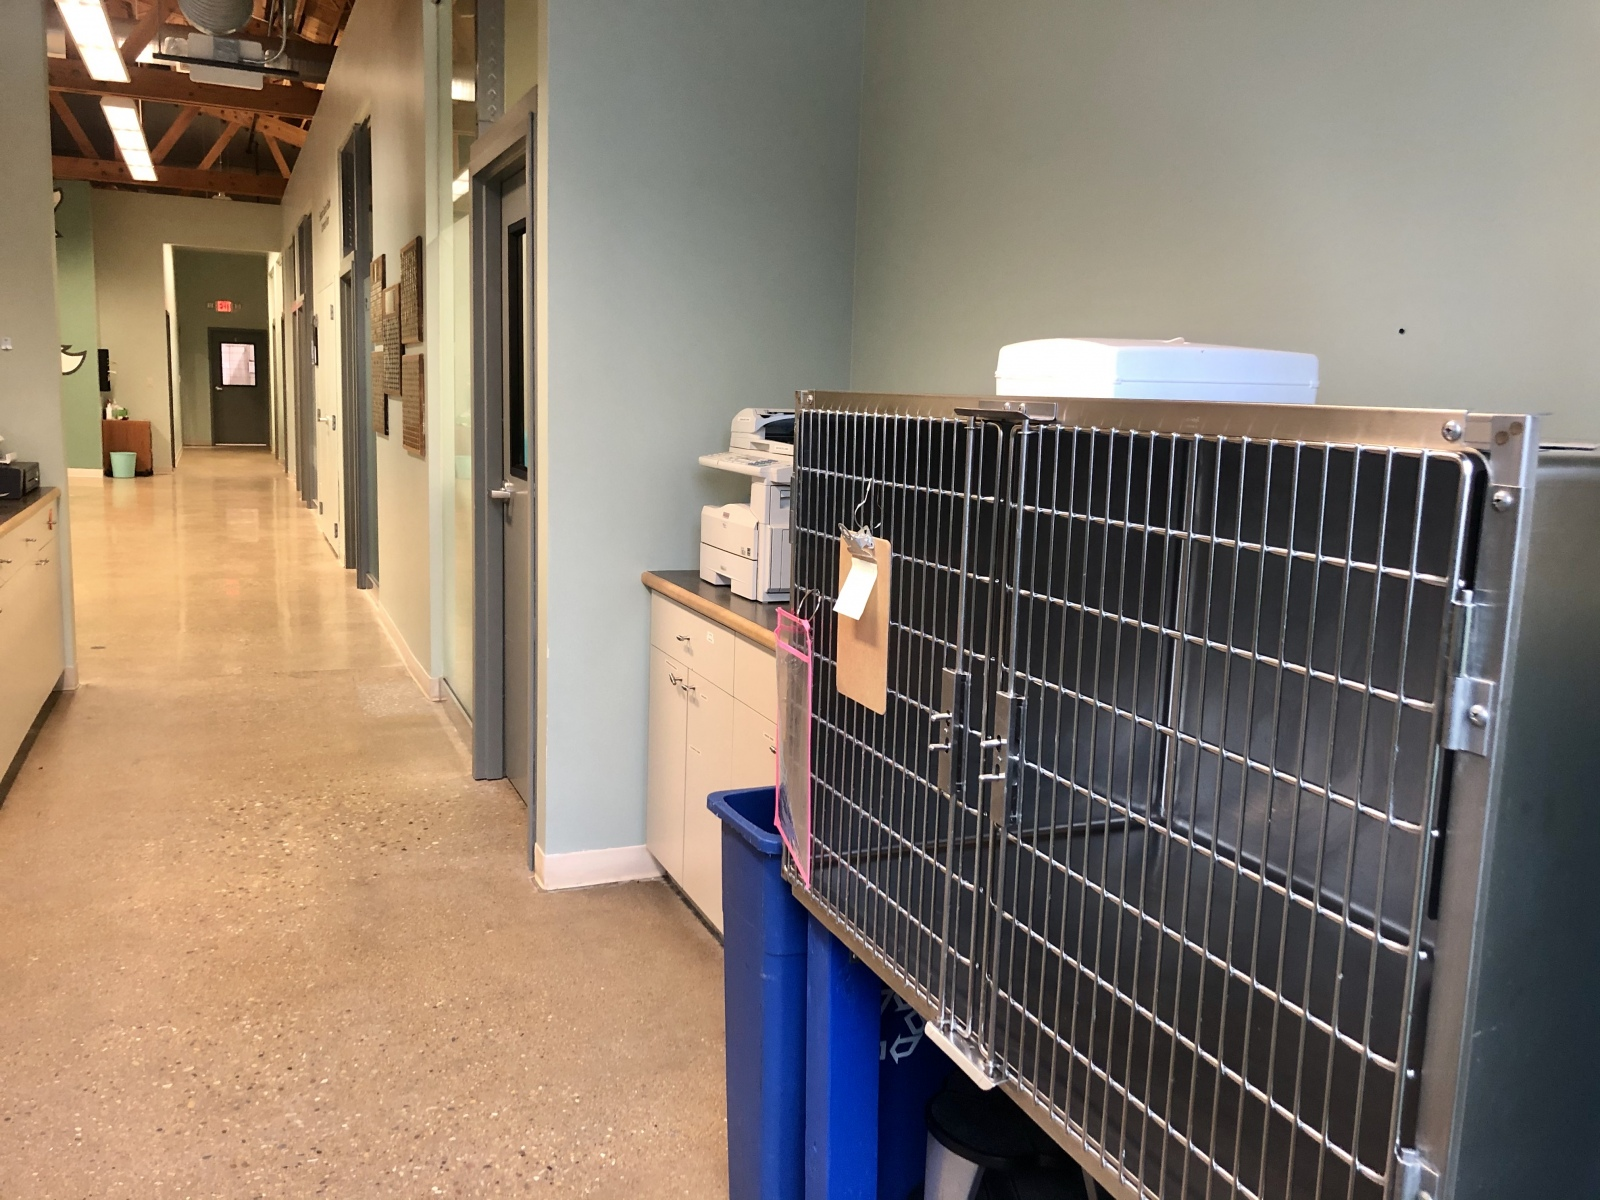 Small Dog Cages - Community Animal Rescue Effort Adoption Center Custom Home. America's Custom Home Builders: New Construction, Remodeling, Restoration Services. Residential and Commercial.